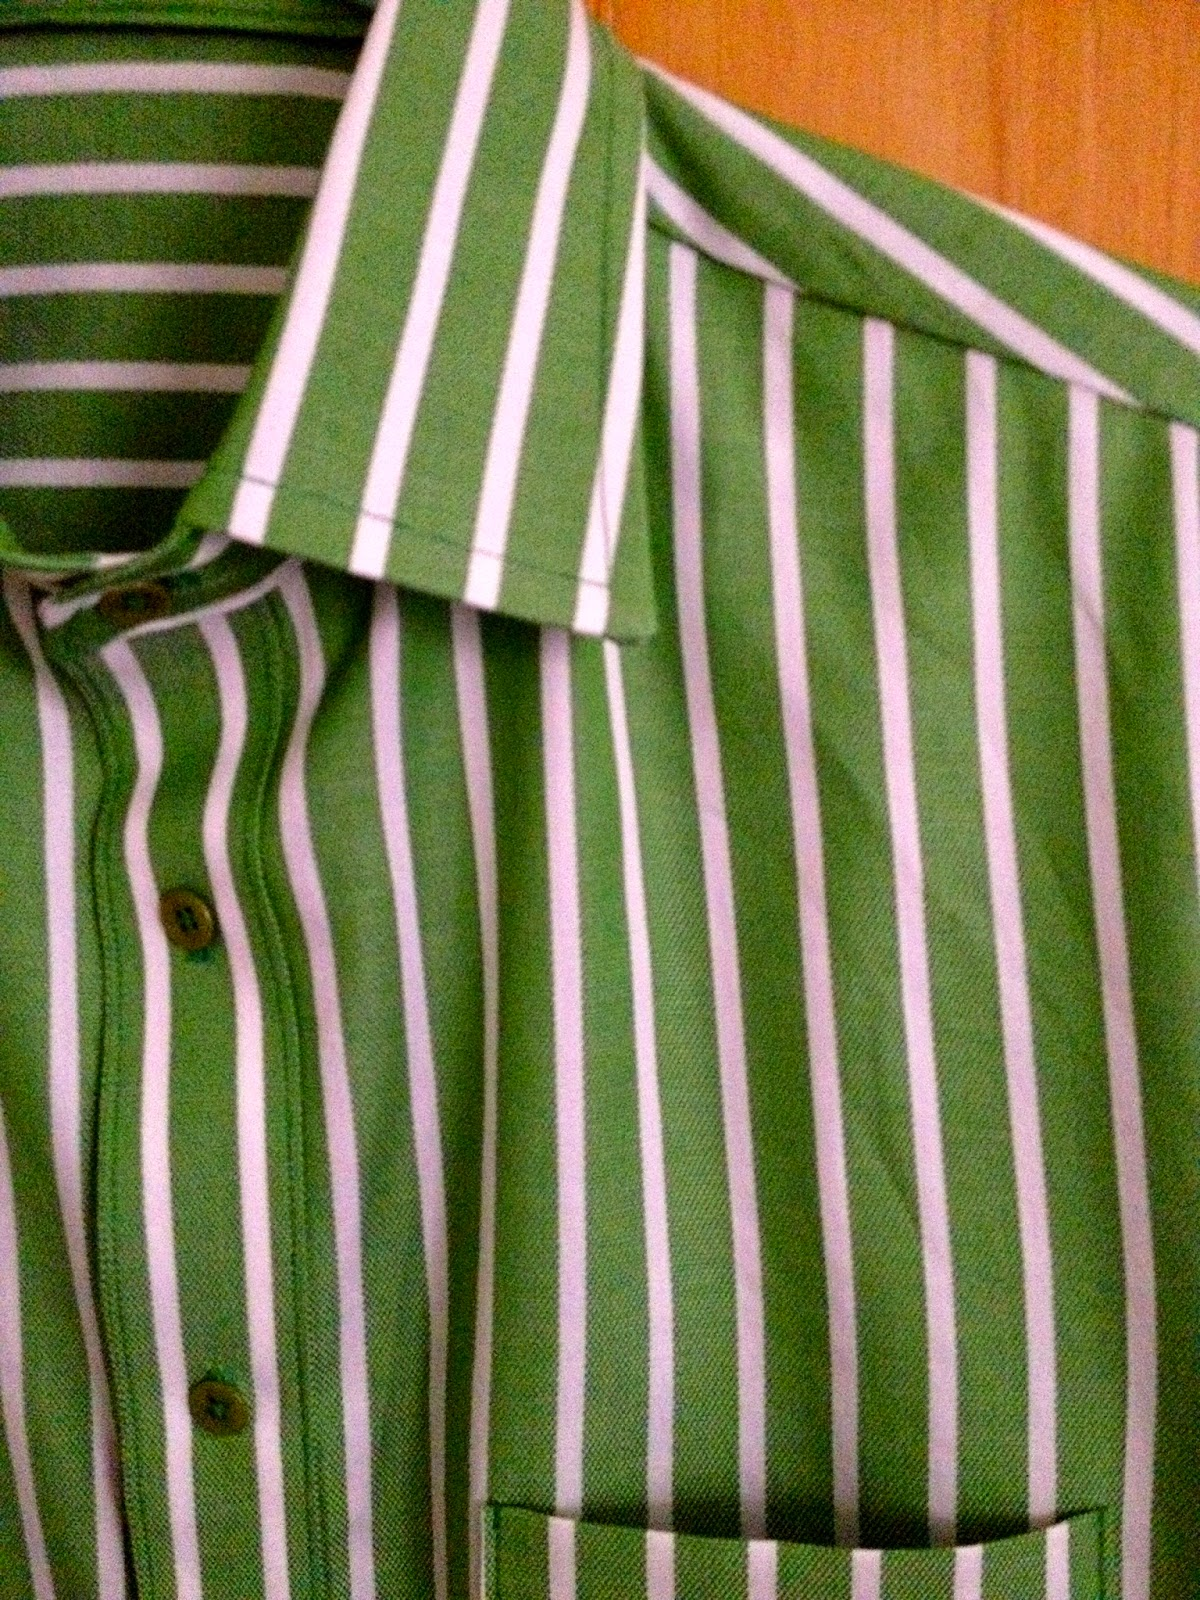 Diary of a Chain Stitcher: Green Striped Colette Negroni Shirt with Stand Collar